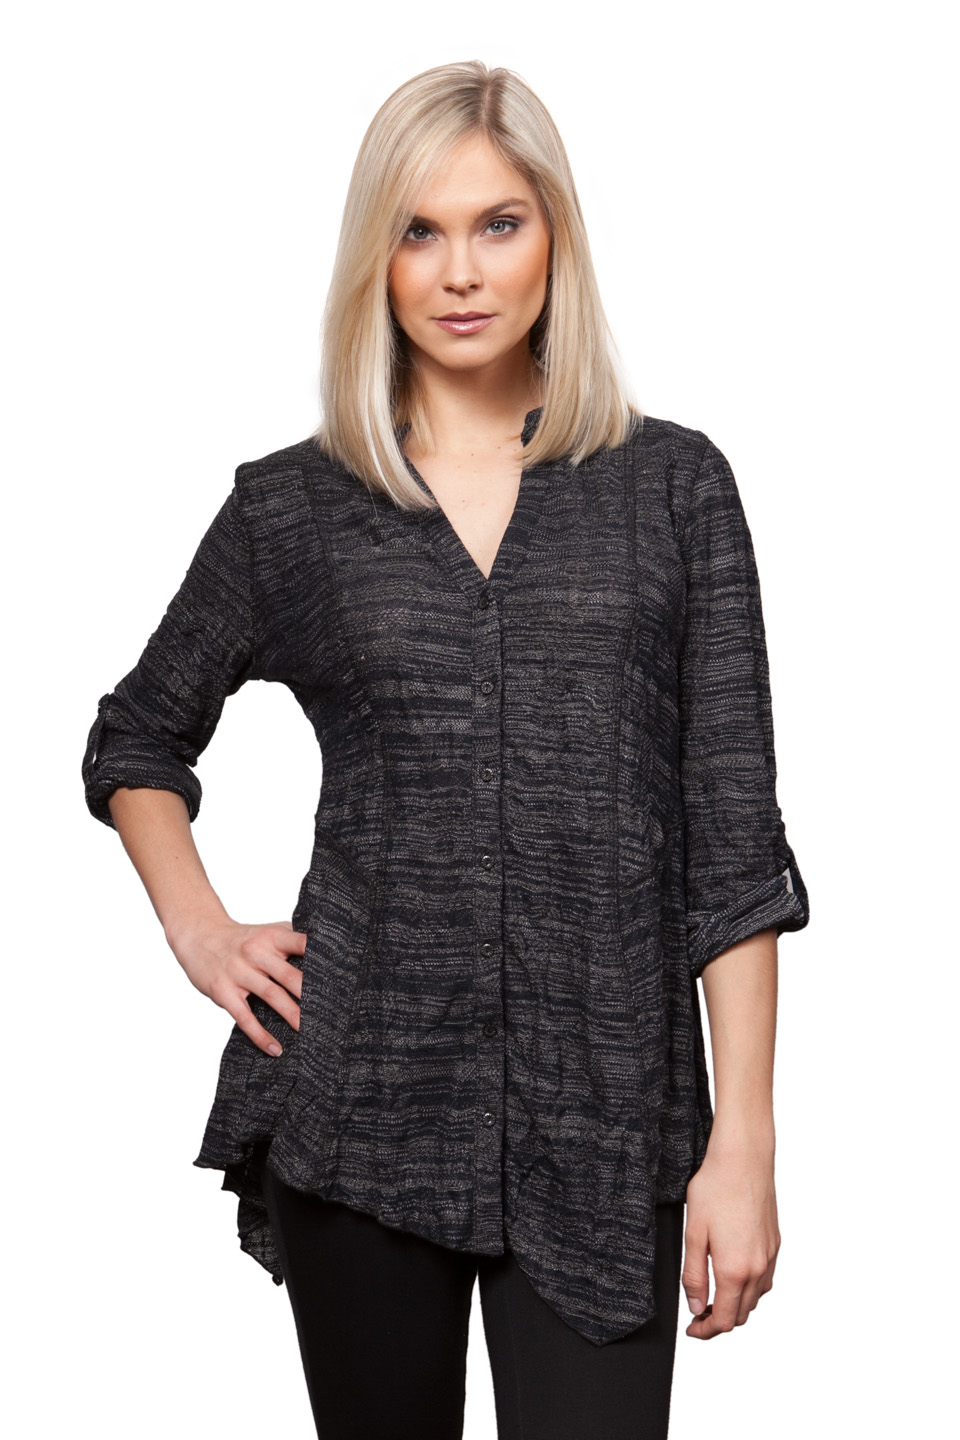 Copy of Style # 53308-16, p. 4<br>Tweedy Crinkle<br>Color: Gunmetal, 4 colors